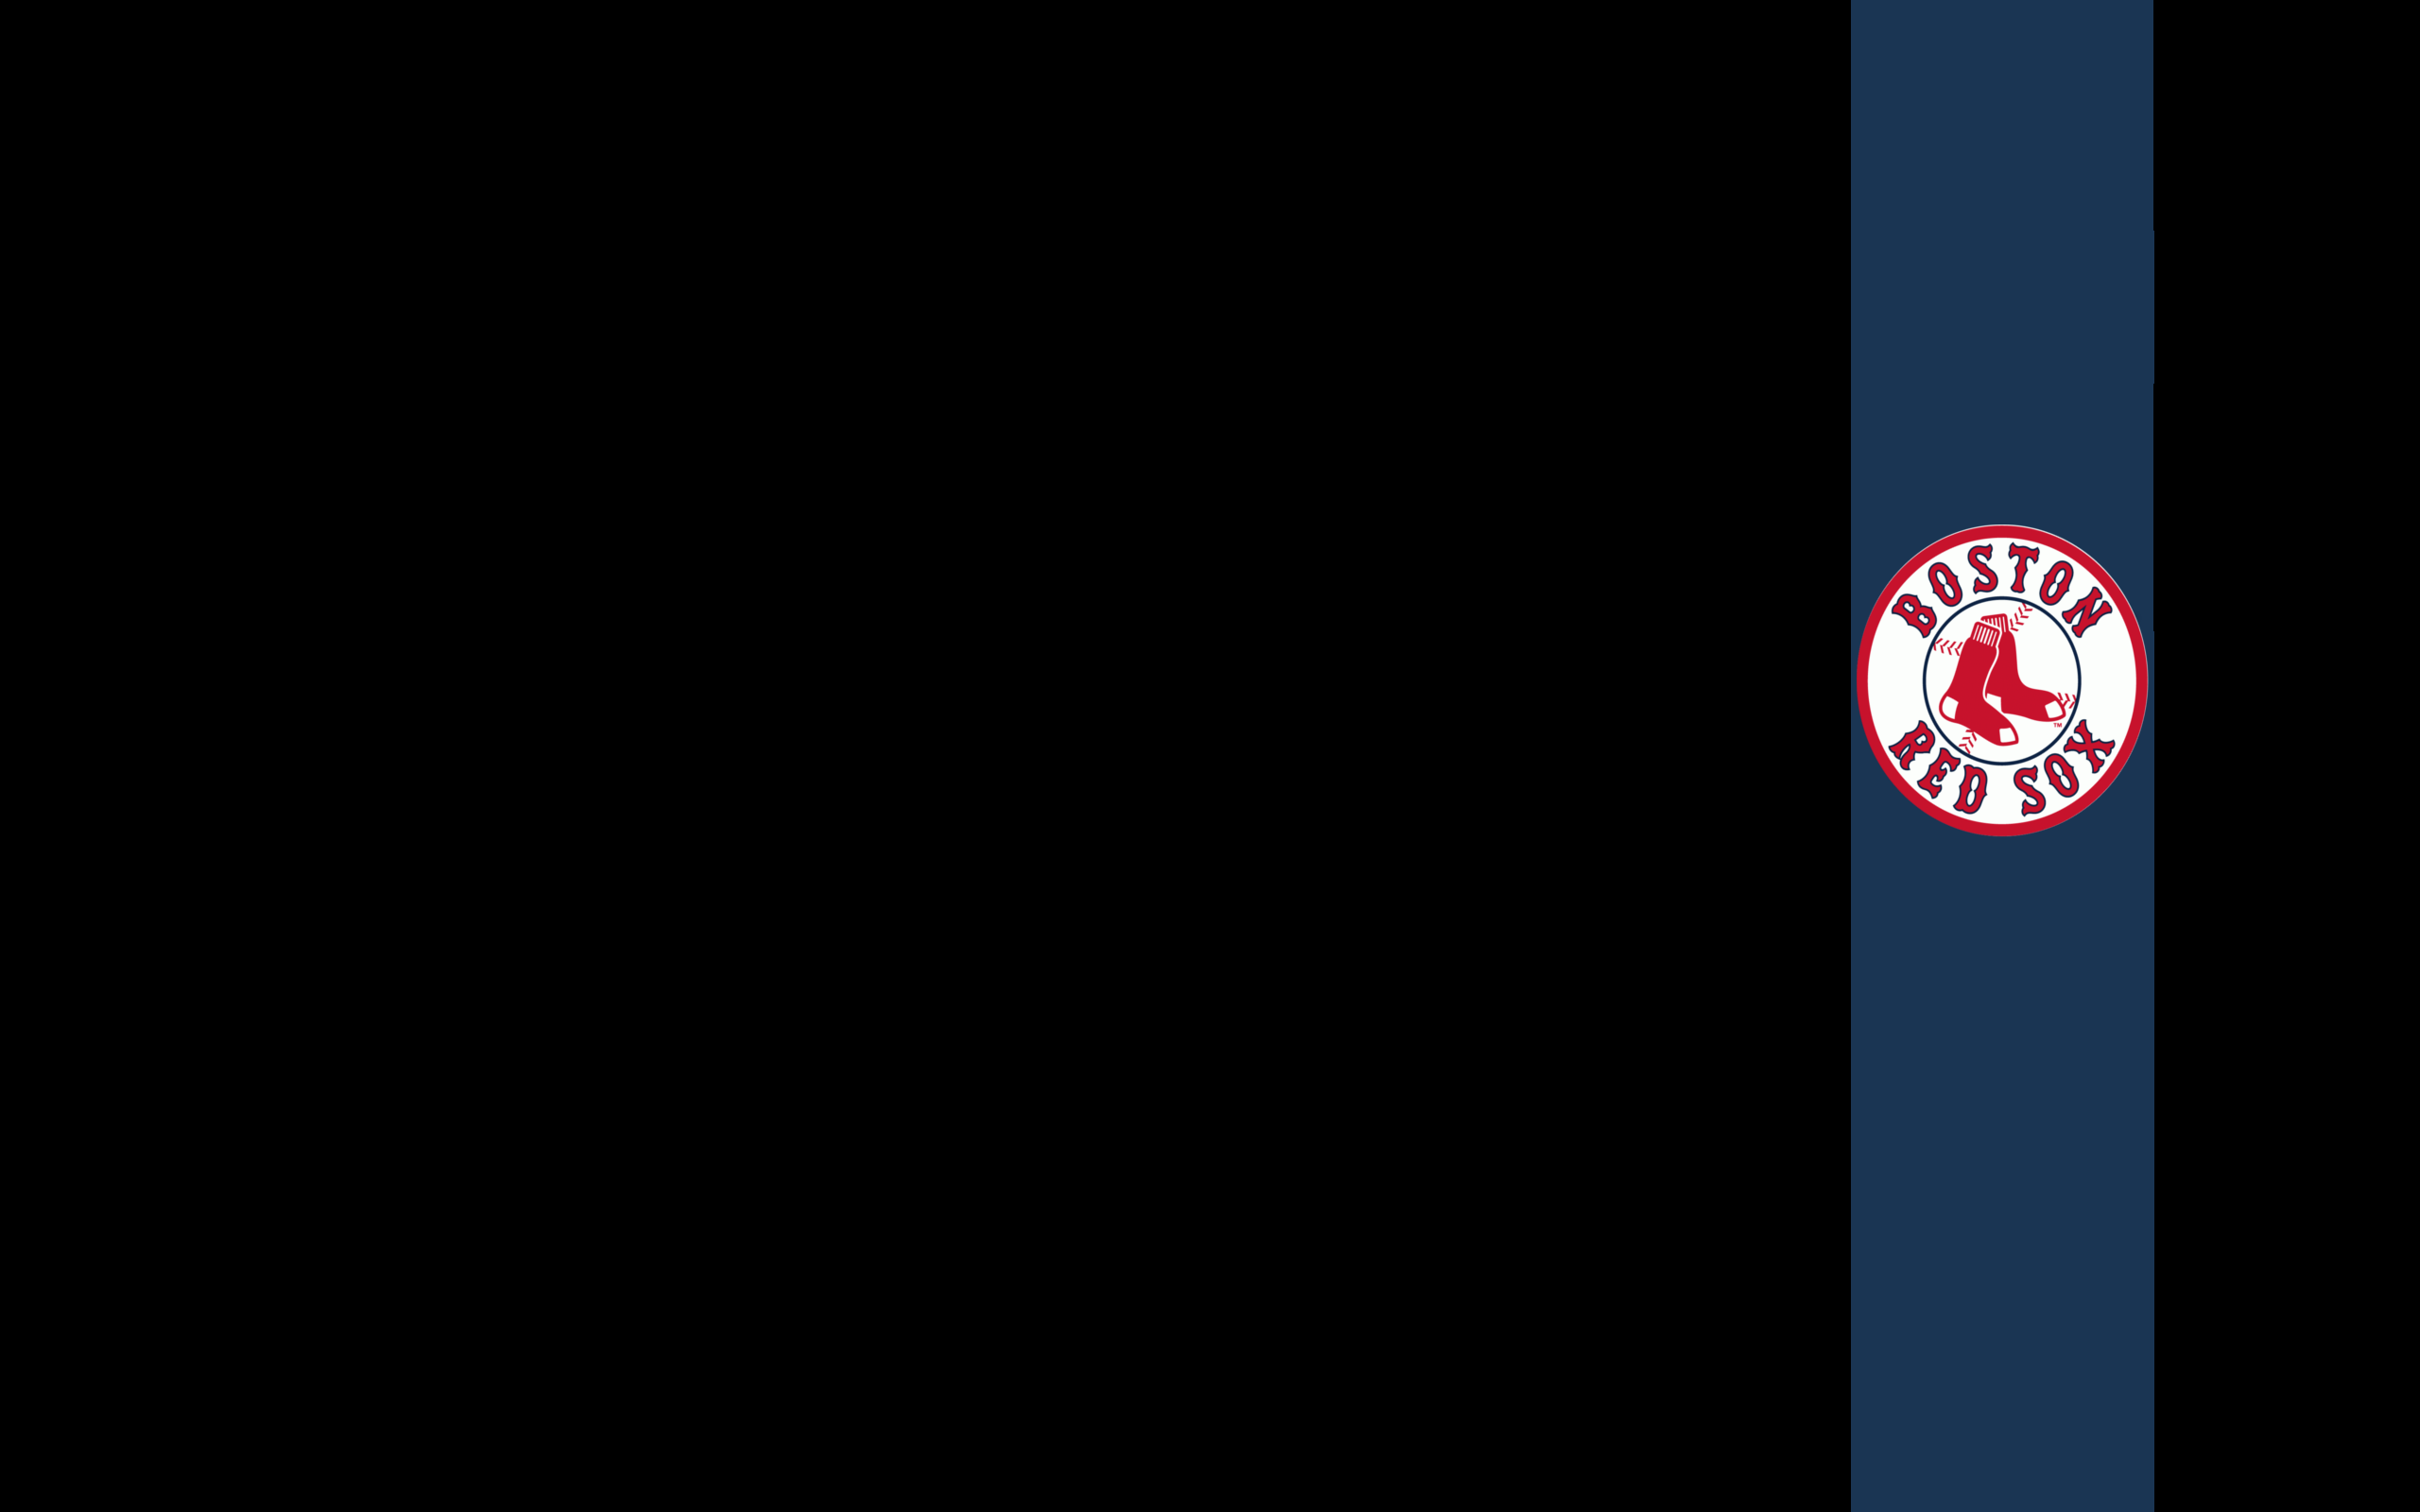 HD Boston Red Sox Logo Wallpapers Wallpapercraft 2560x1600